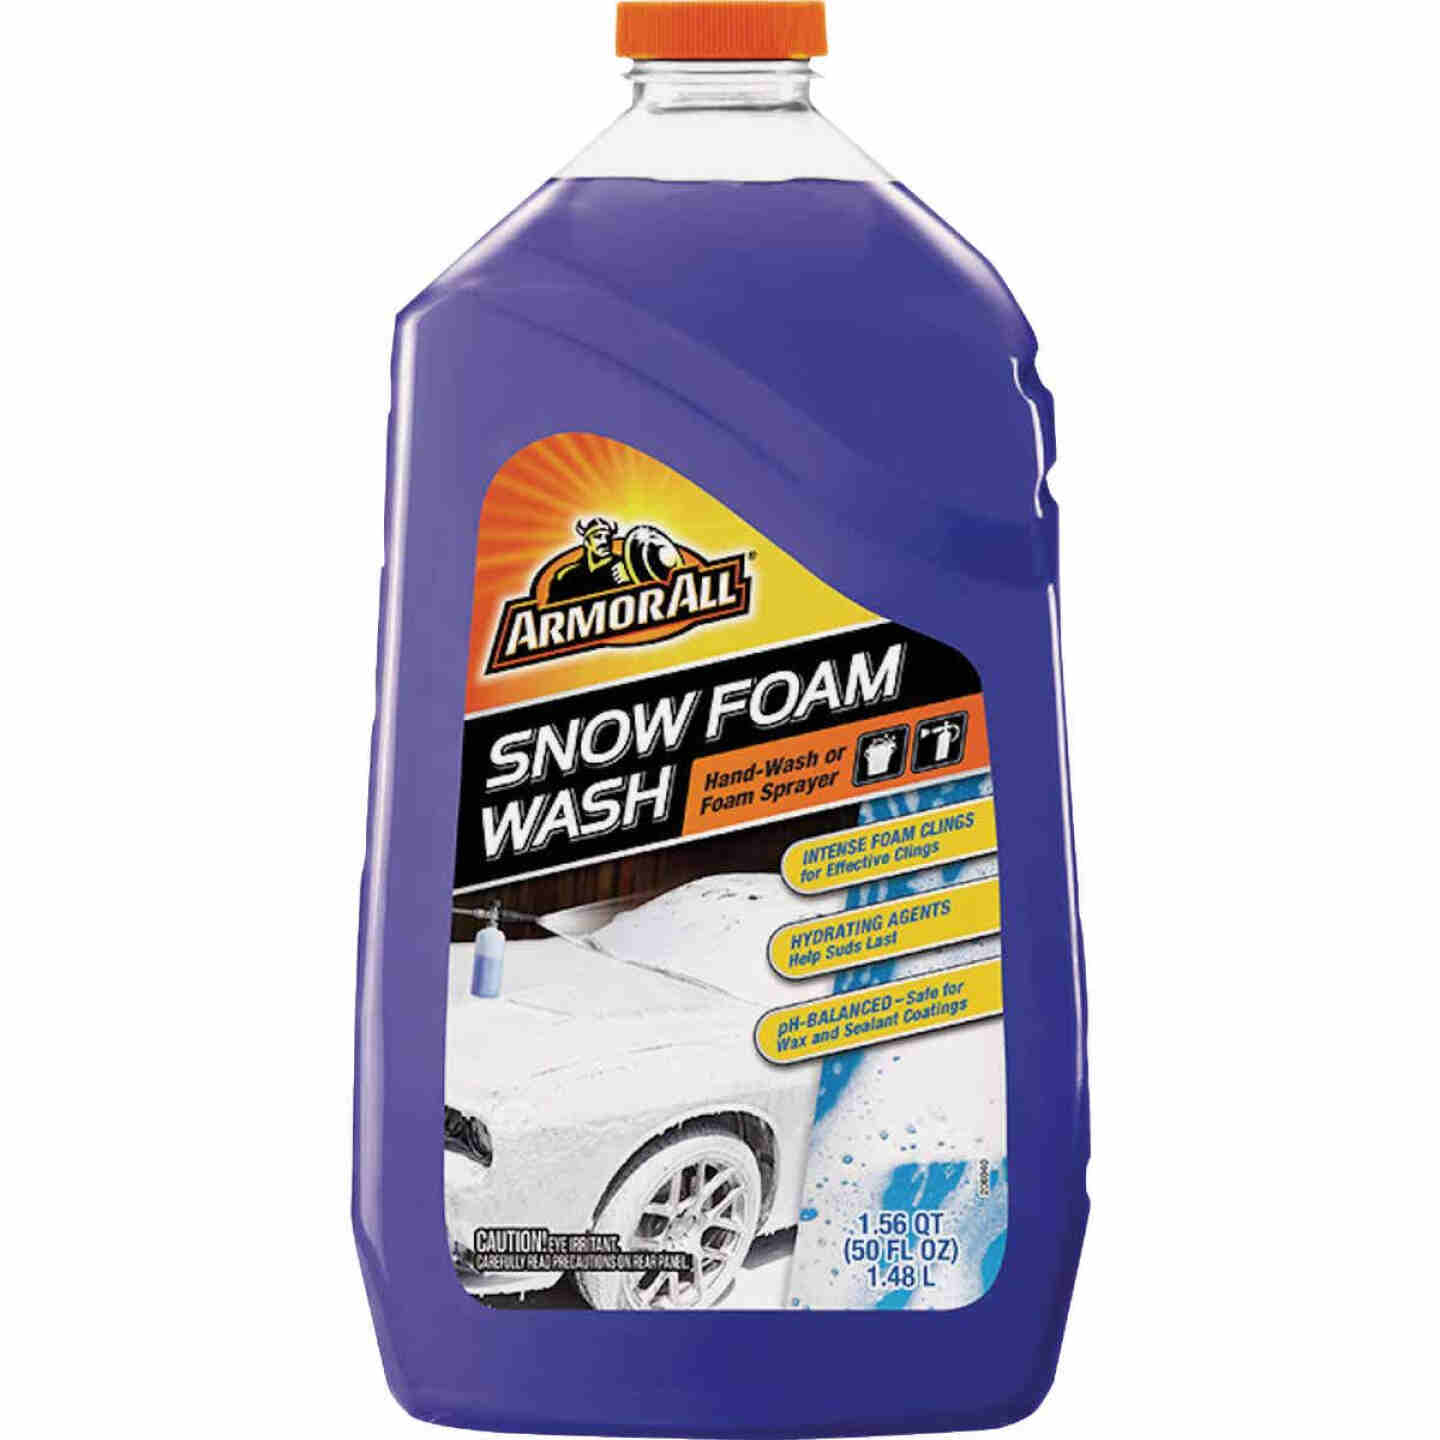 Armor All 50 Oz. Liquid Snow Foam Car Wash Image 1